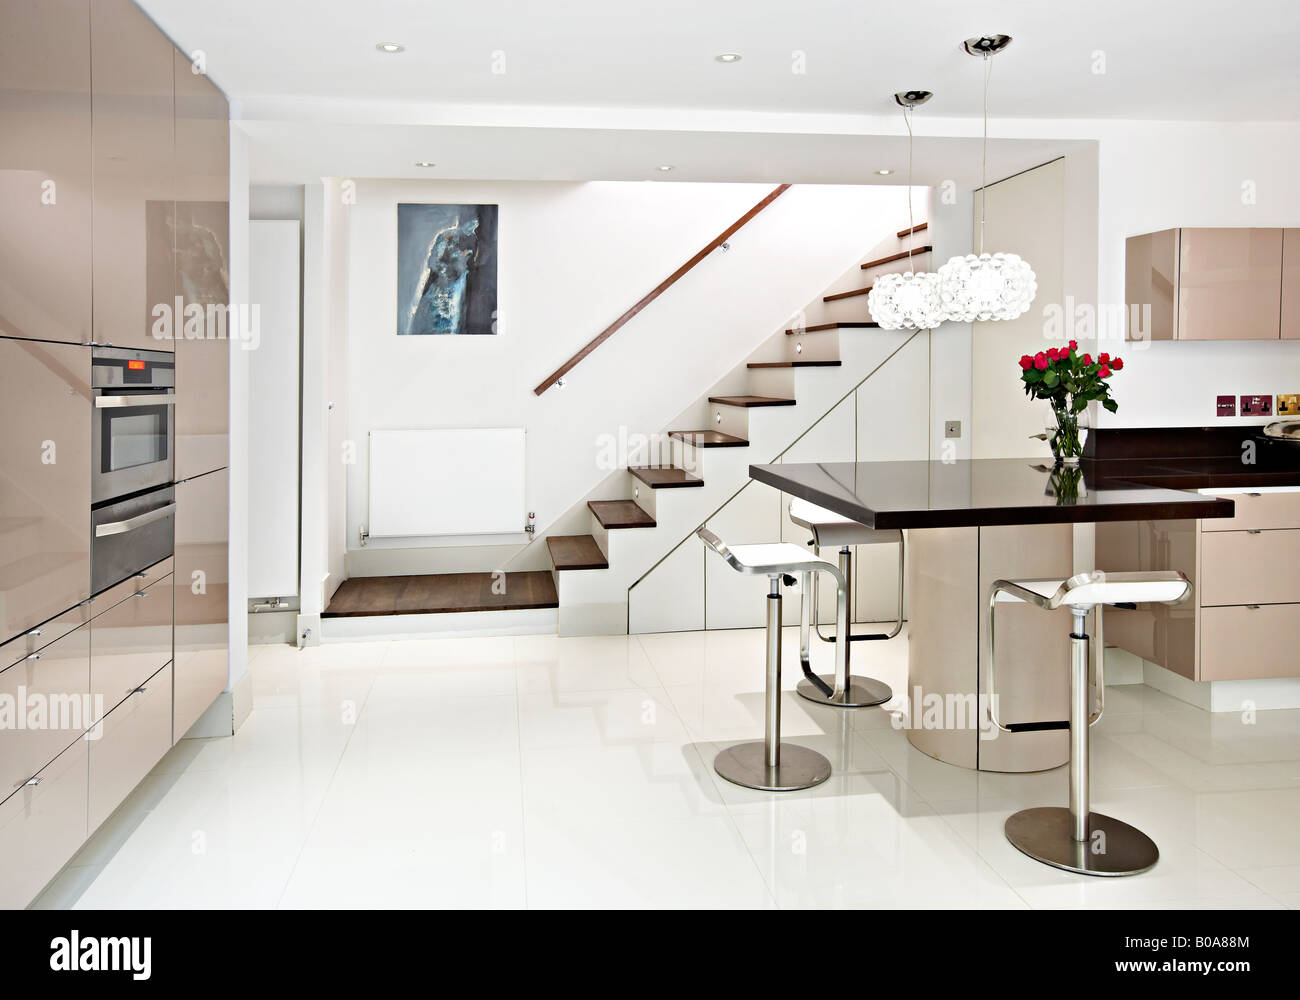 Modern Kitchen Stairs Stock Photo 17436404 Alamy